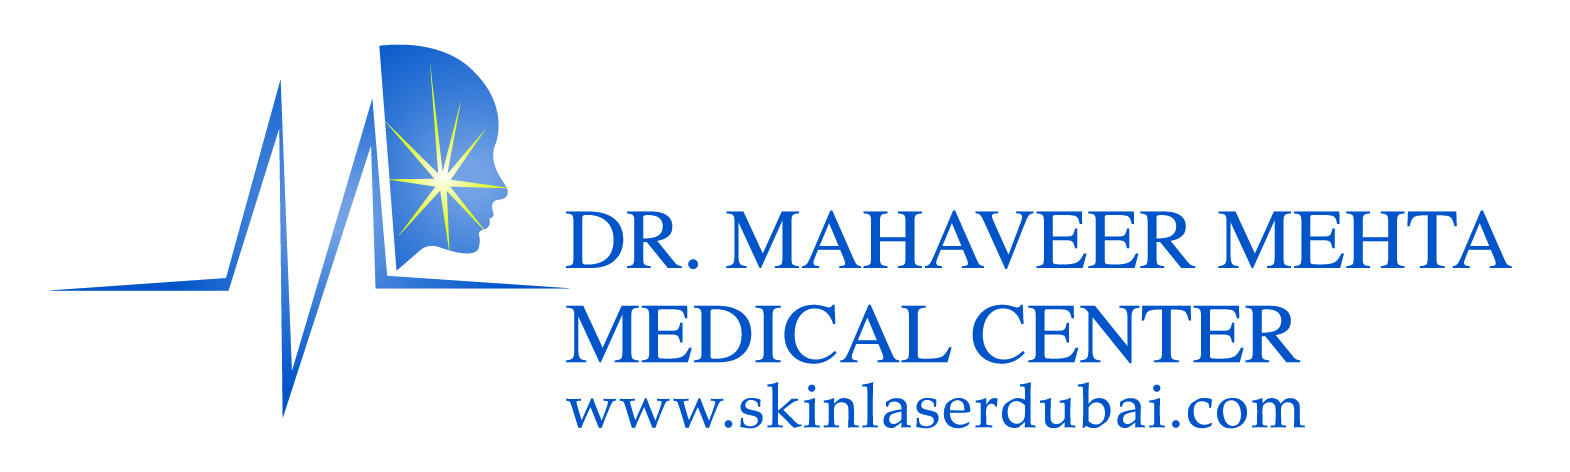 Dr. Mahaveer Mehta Medical Center